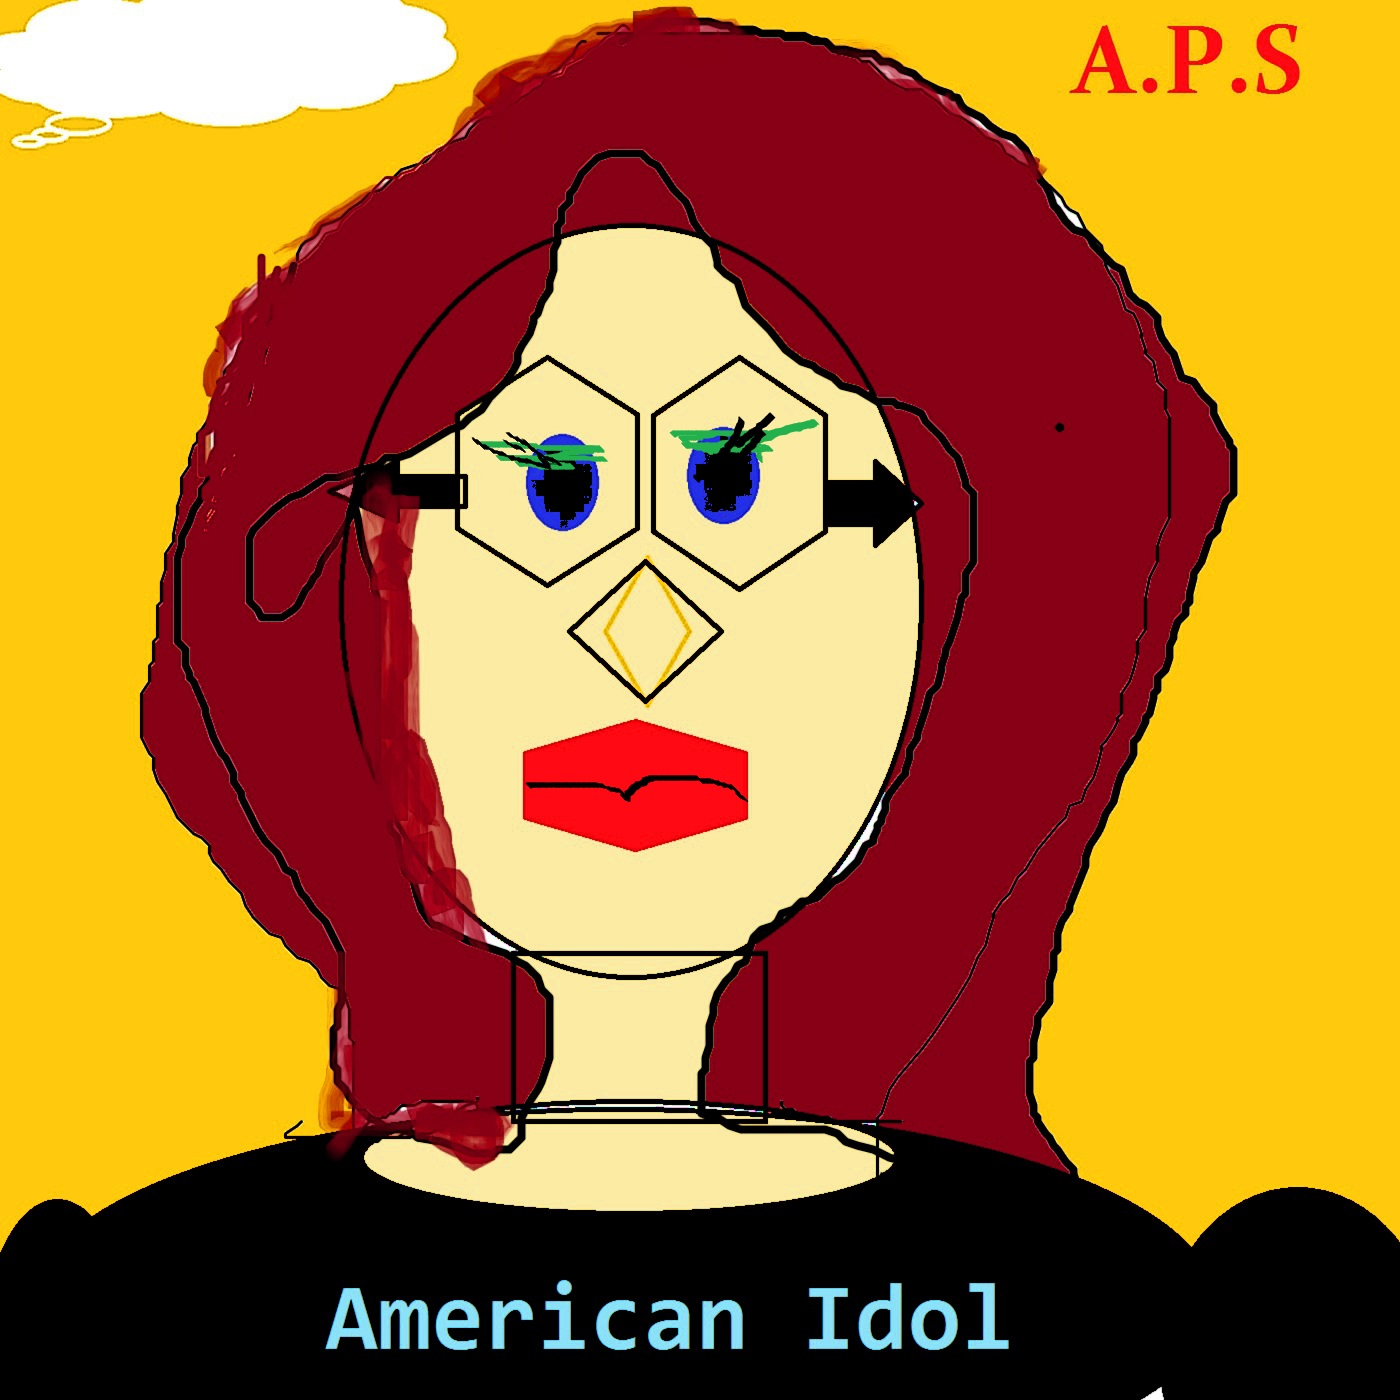 americanidolcover2